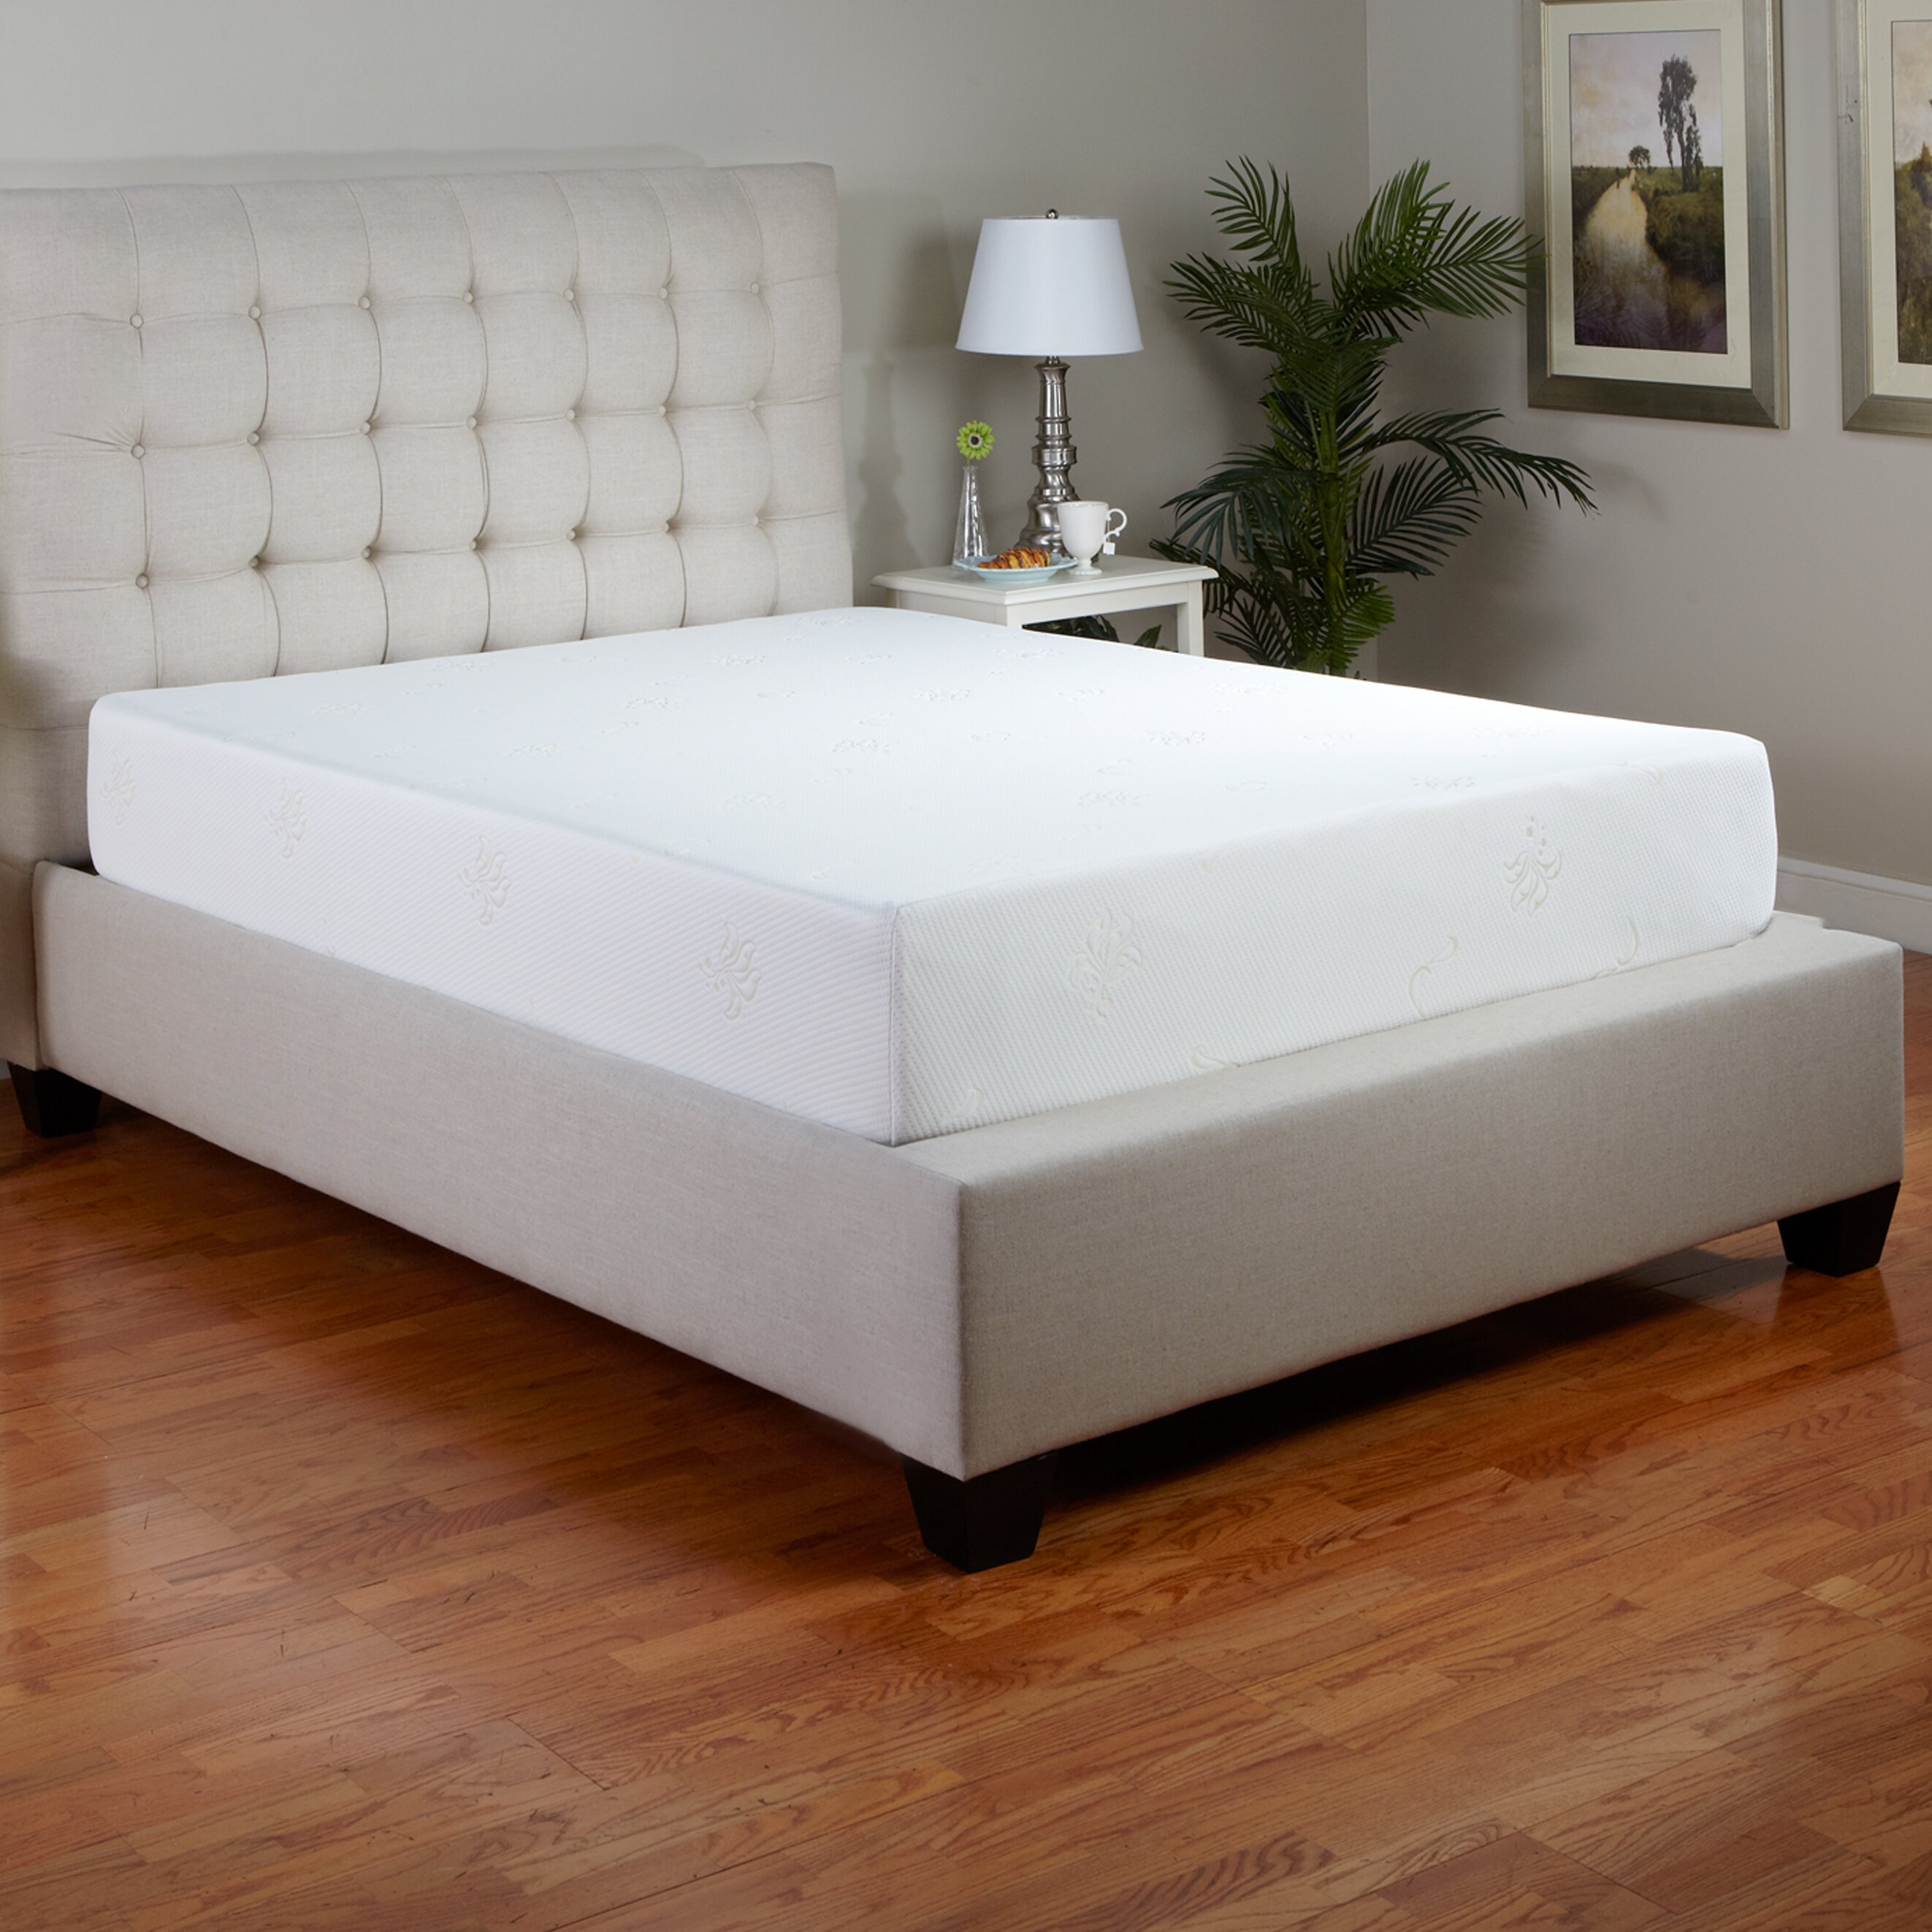 "Classic Brands 10"" Memory Foam Mattress & Reviews"